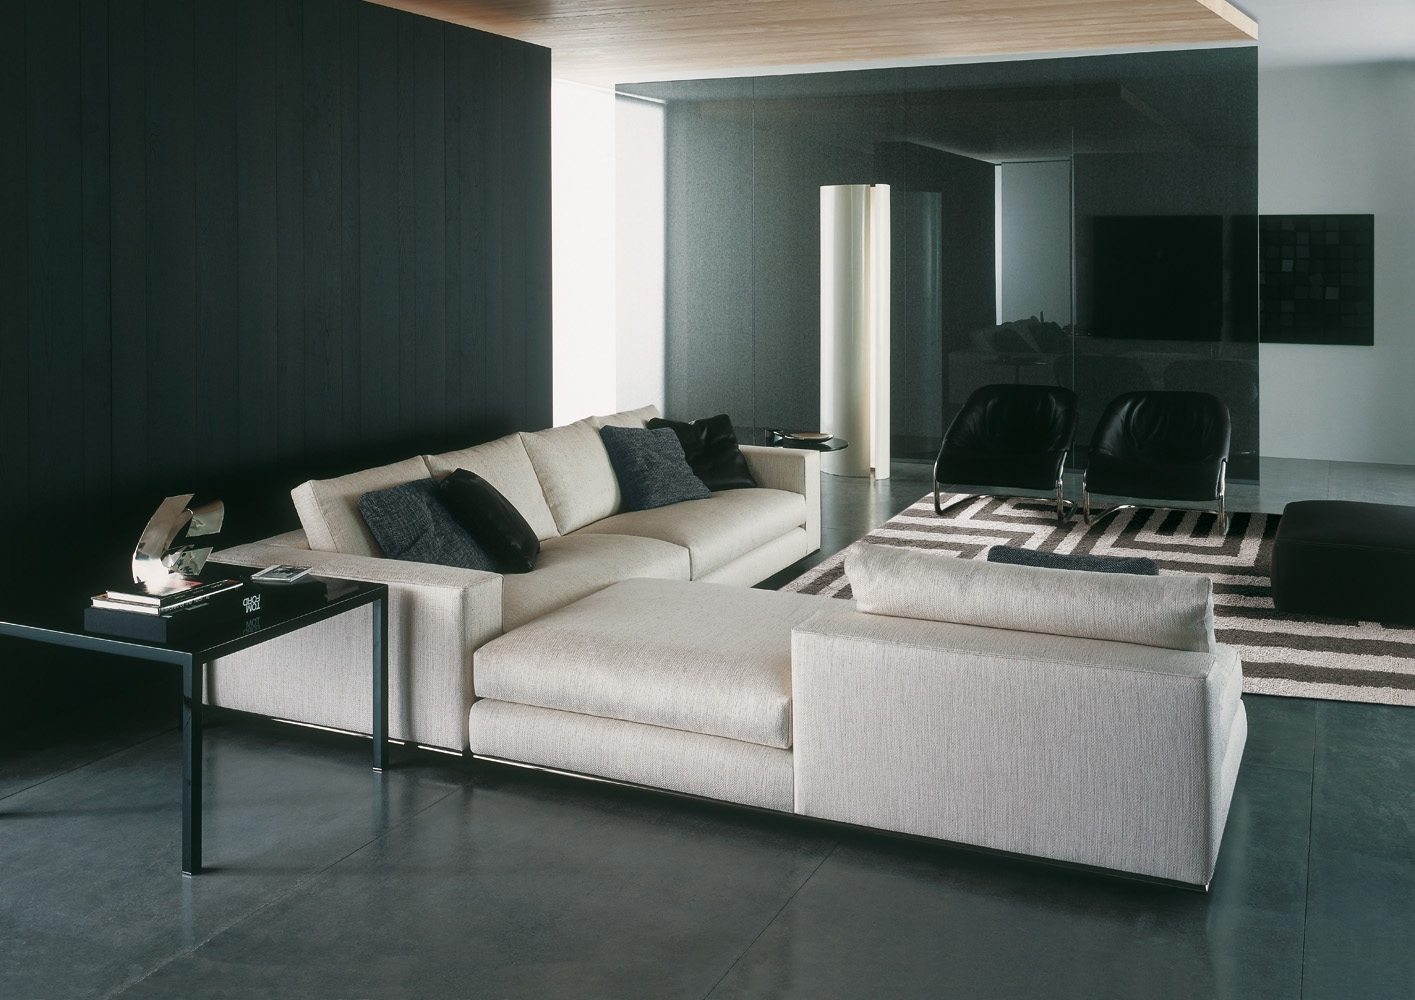 Hamilton Sofa | Designedrodolfo Dordoni, Minotti, Orange Skin throughout Hamilton Sectional Sofas (Image 5 of 10)